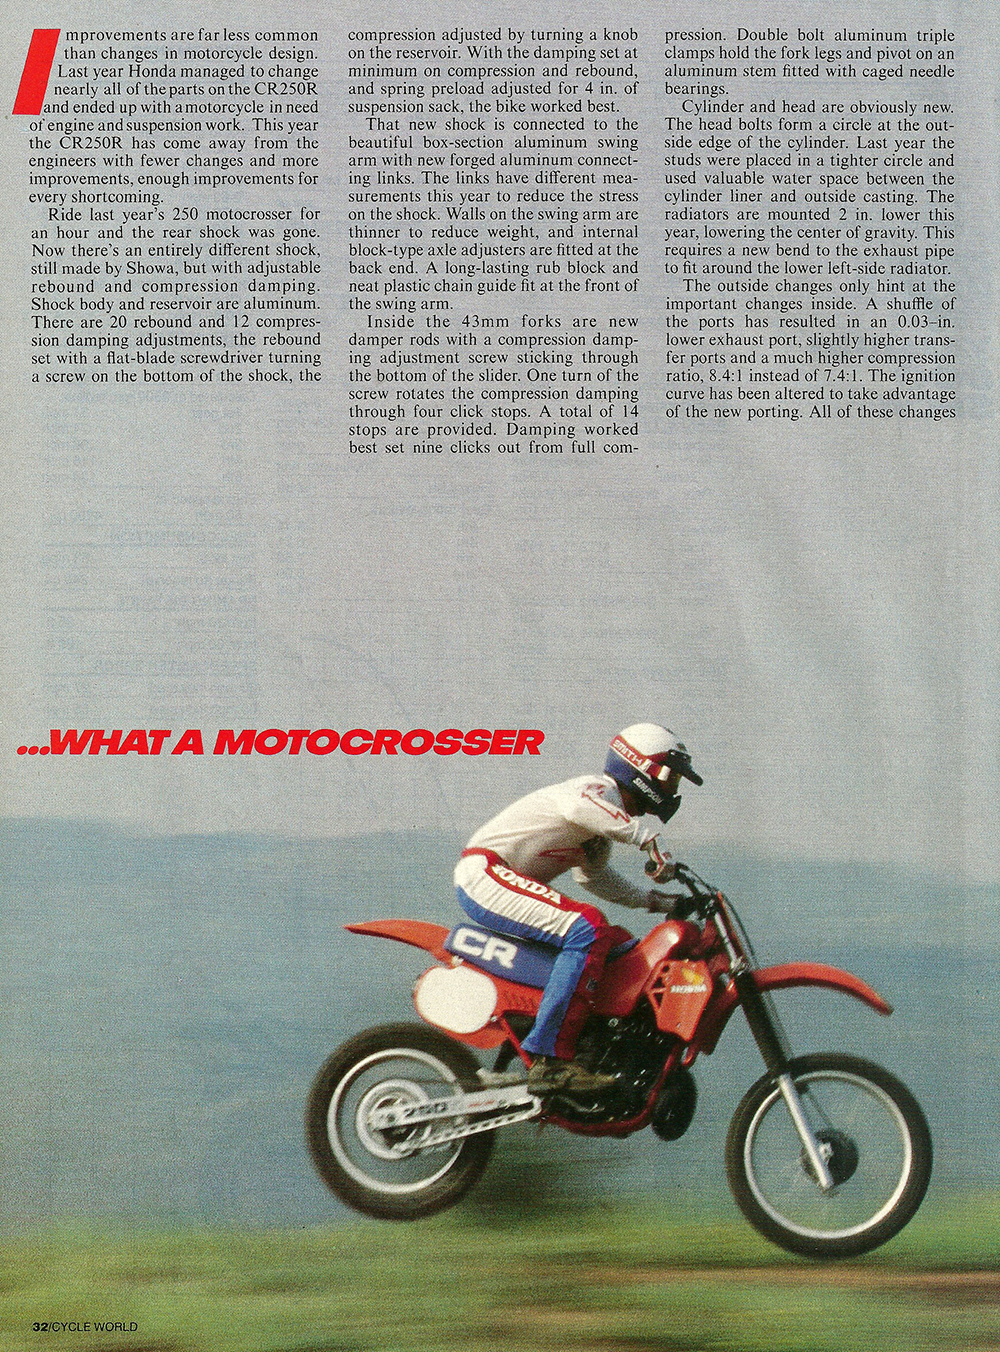 1983 Honda CR250R road test 01.jpg